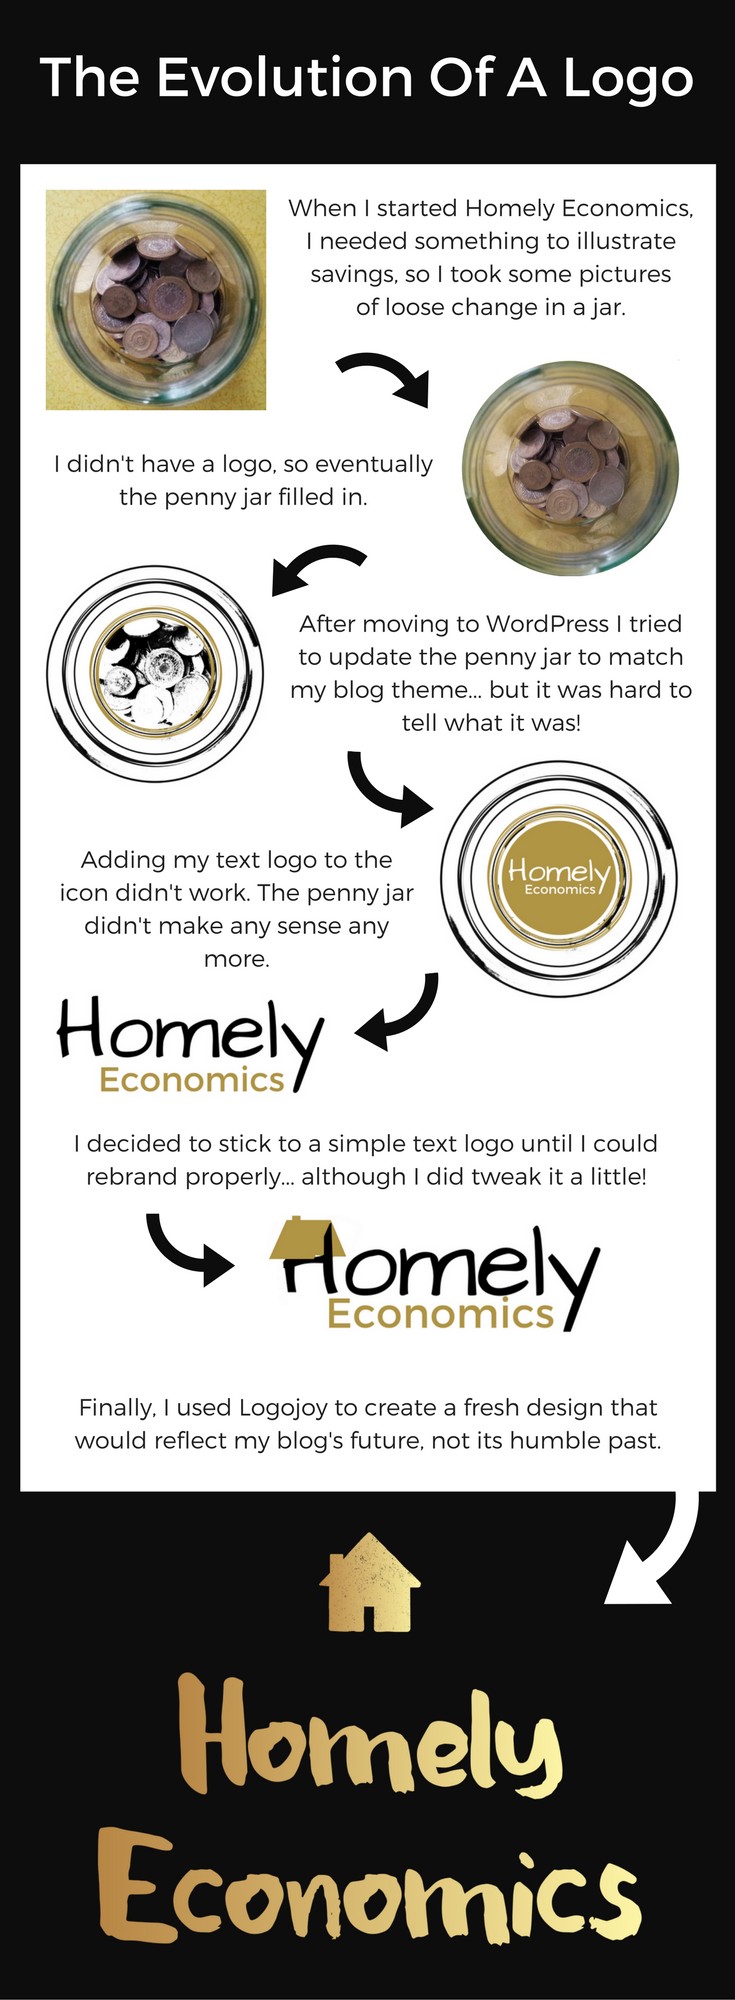 These are some of the stages that I went through for a few years whilst trying to design my logo by myself, before finally rebranding with Logojoy.